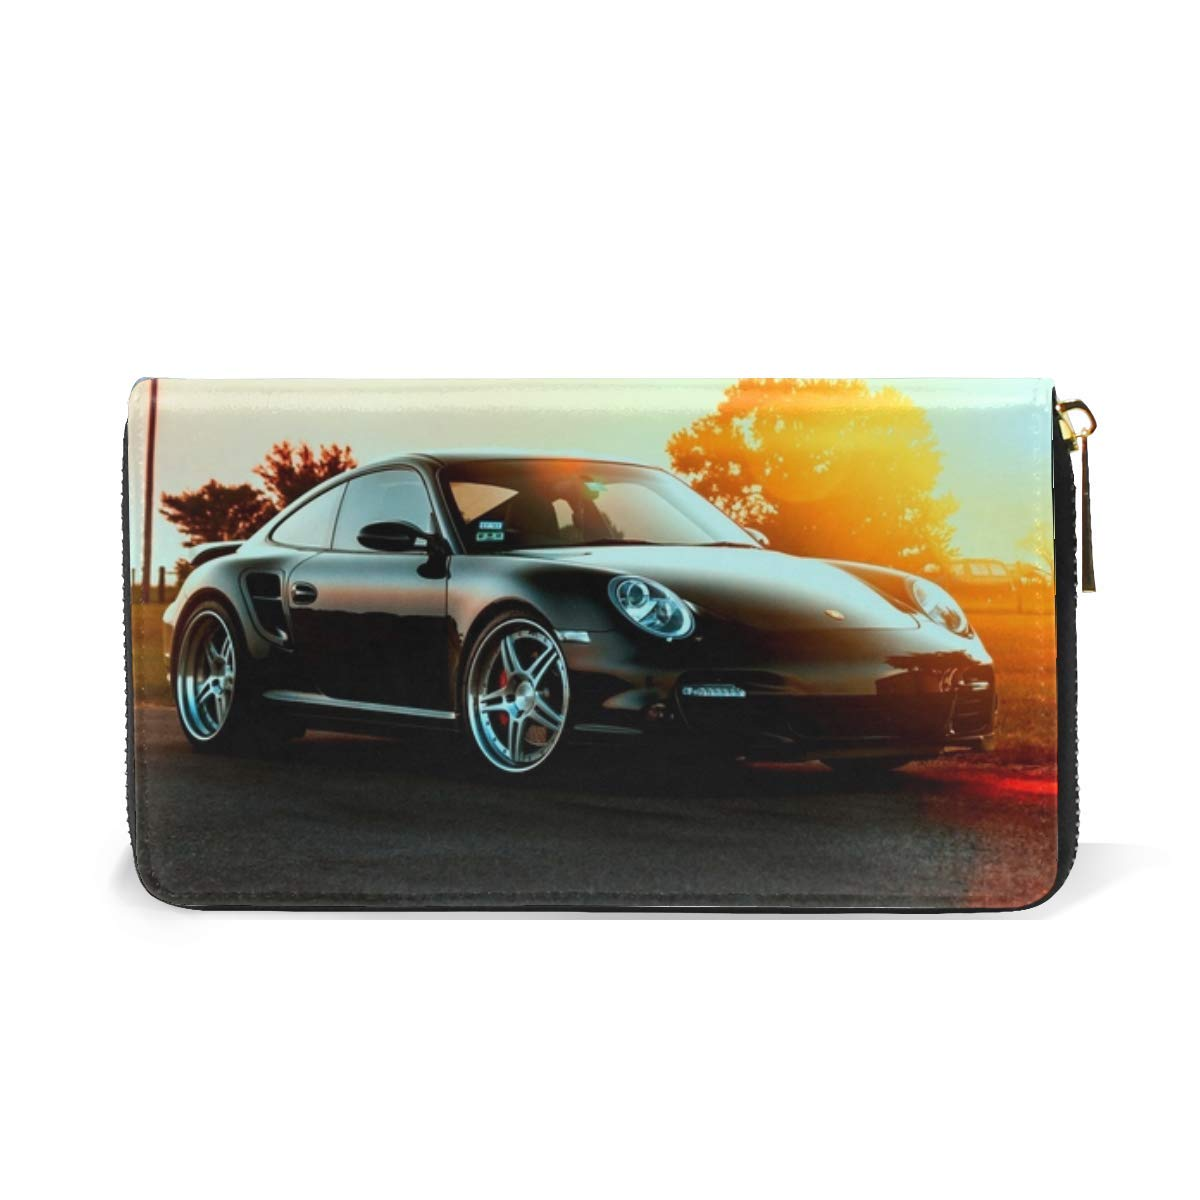 Amazon.com: Porsche Cars City Sunset Themes Leather Clutch Purse Long Wallet Handbag Card Holder: Shoes